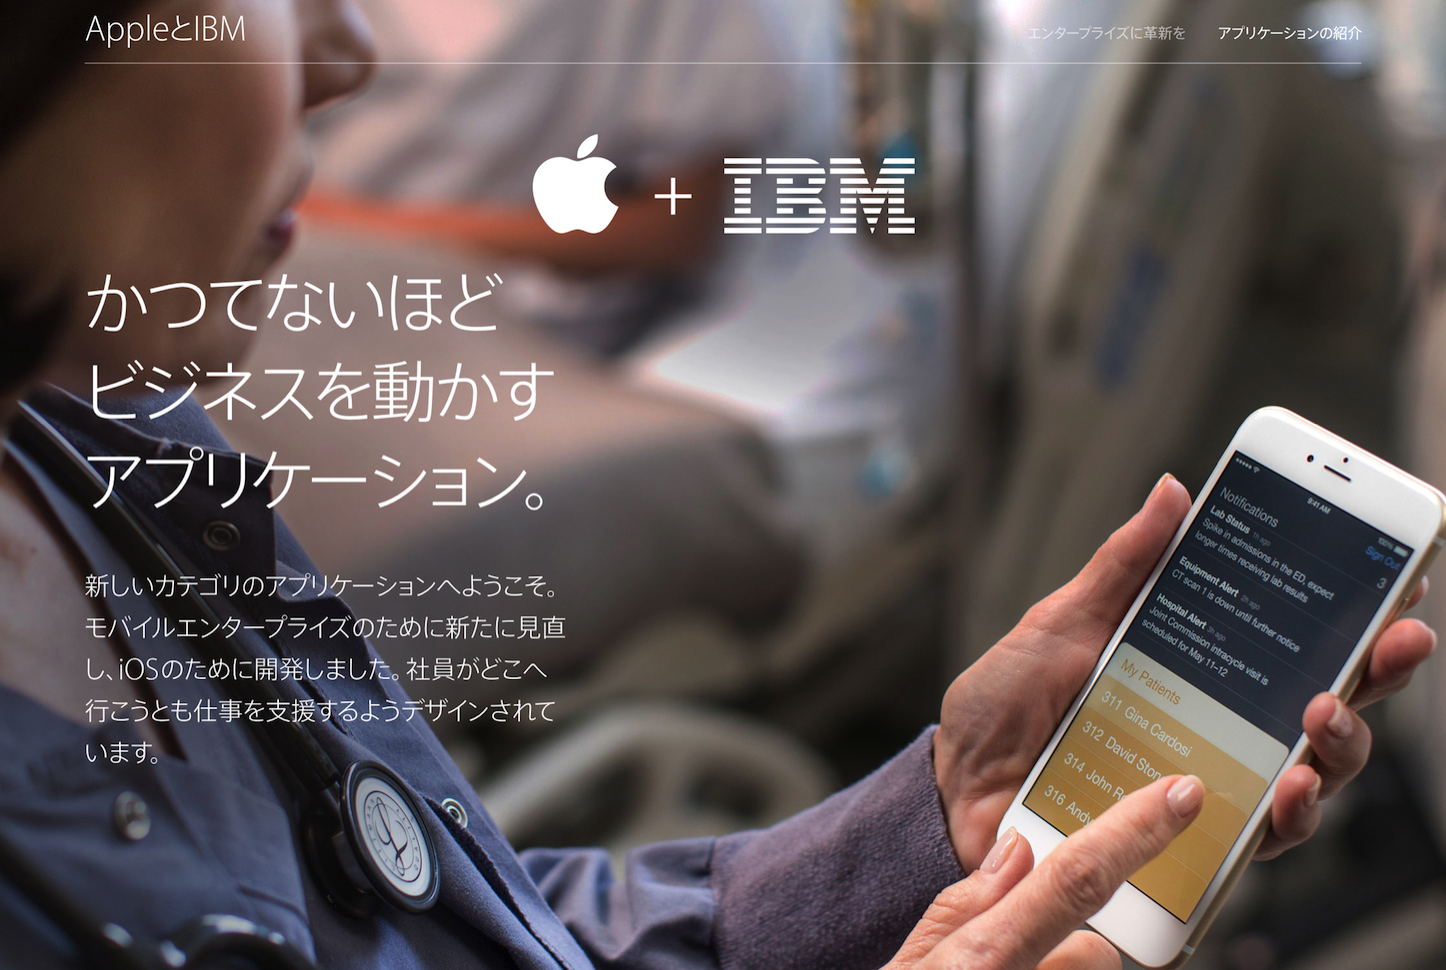 Apple IBM